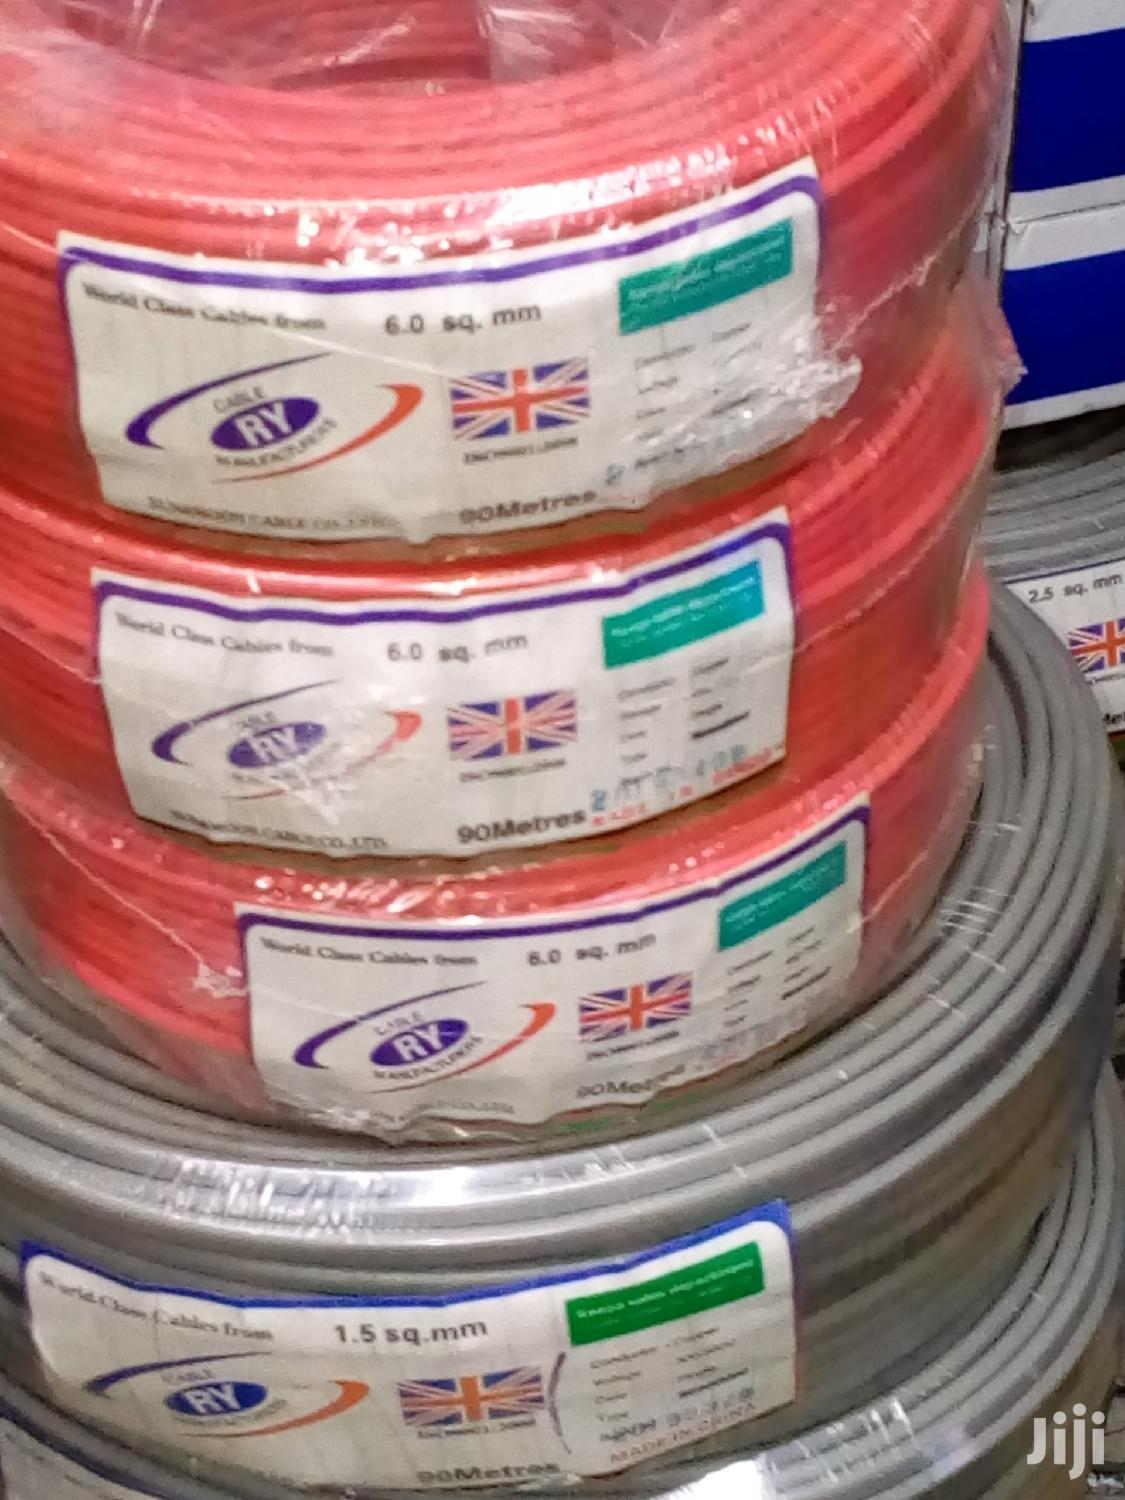 6.0 Mm Single Core Electrical Cable. | Electrical Equipment for sale in Nairobi Central, Nairobi, Kenya